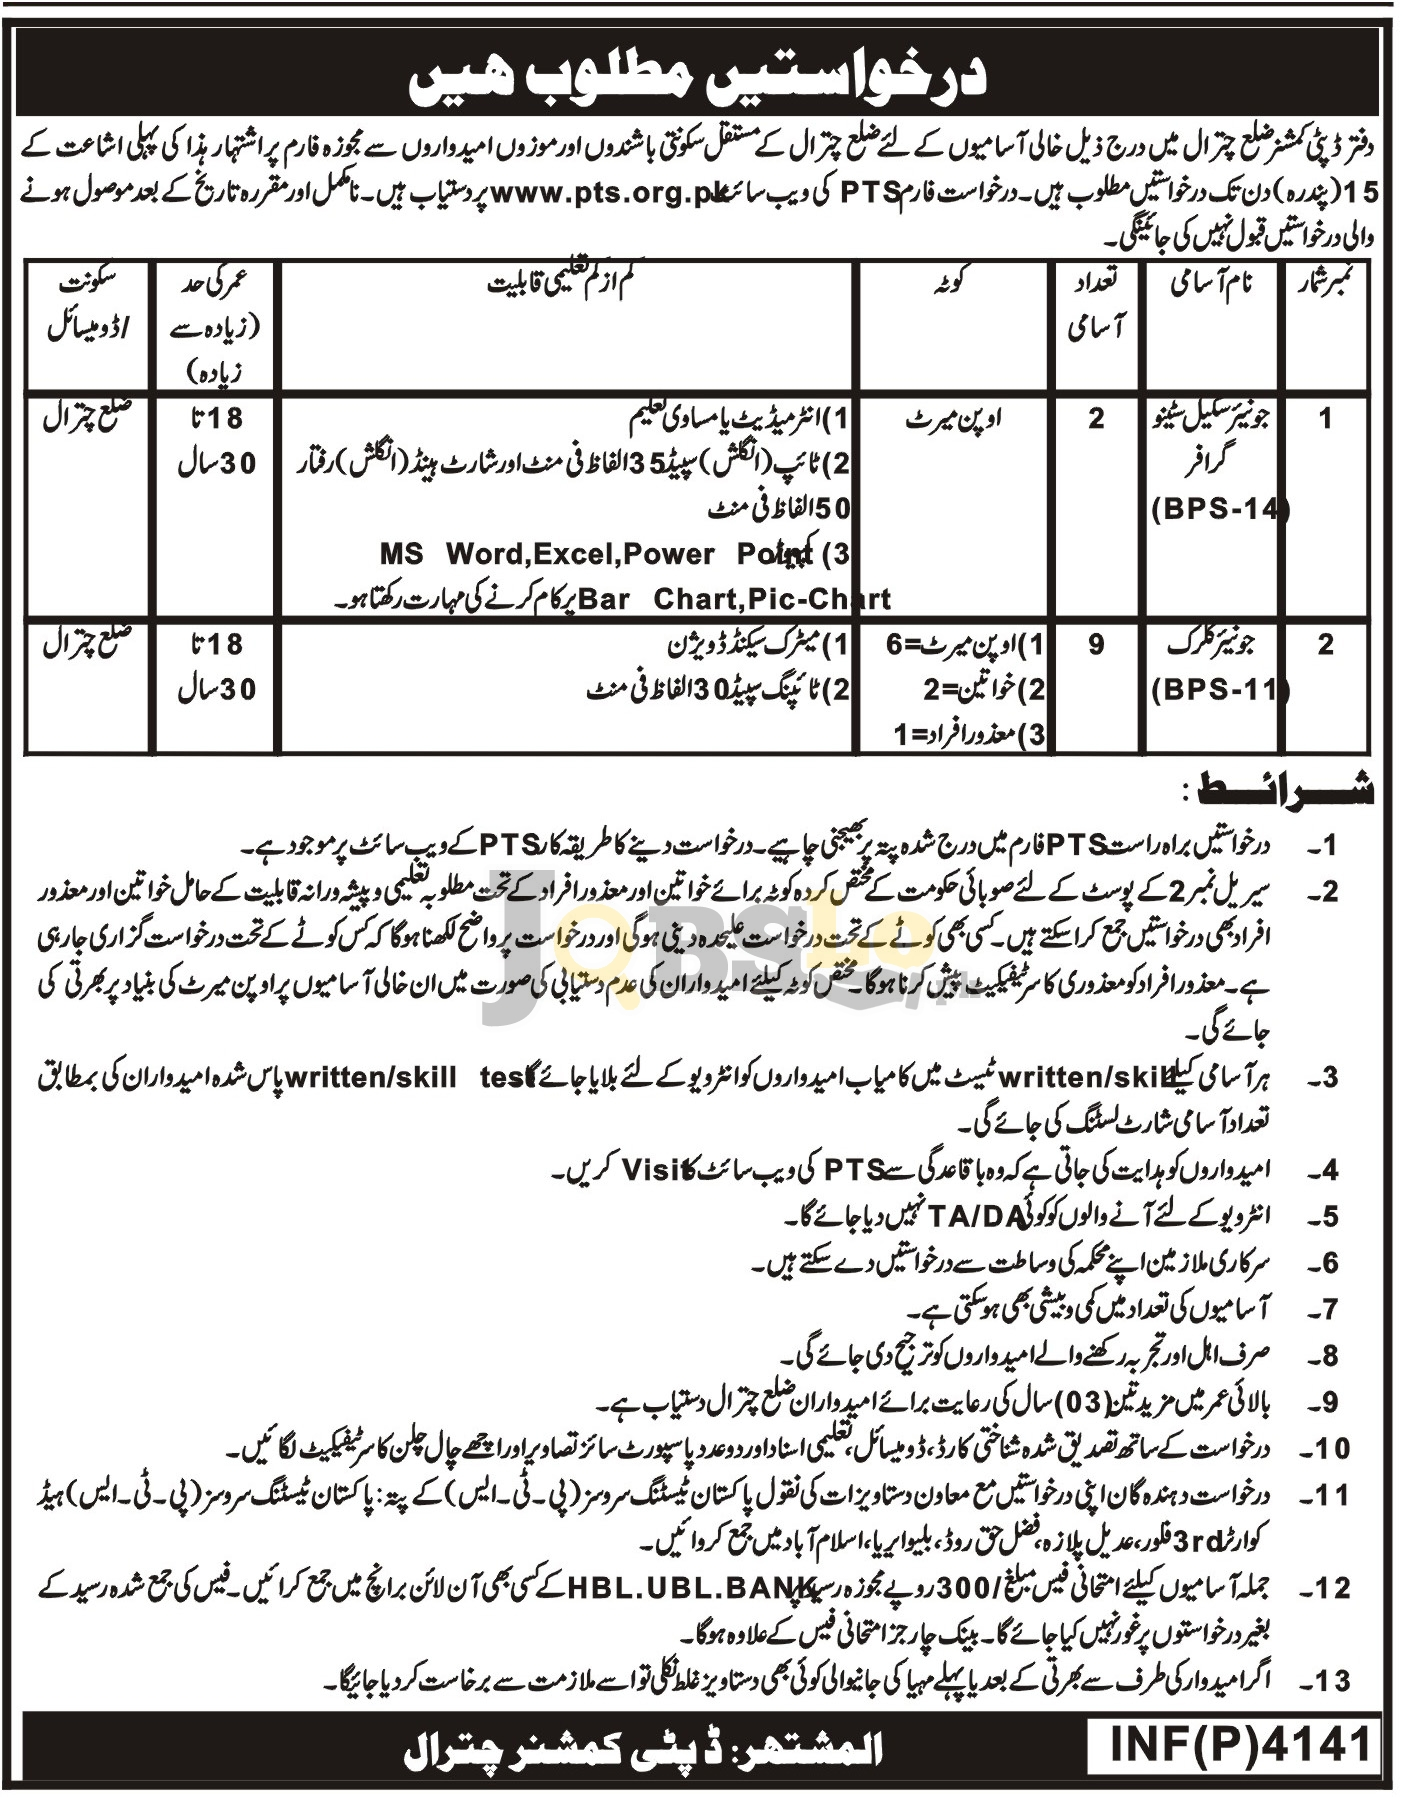 Deputy Commissioner Office Chitral jobs 2018 PTS Application Form Download Latest Advertisement